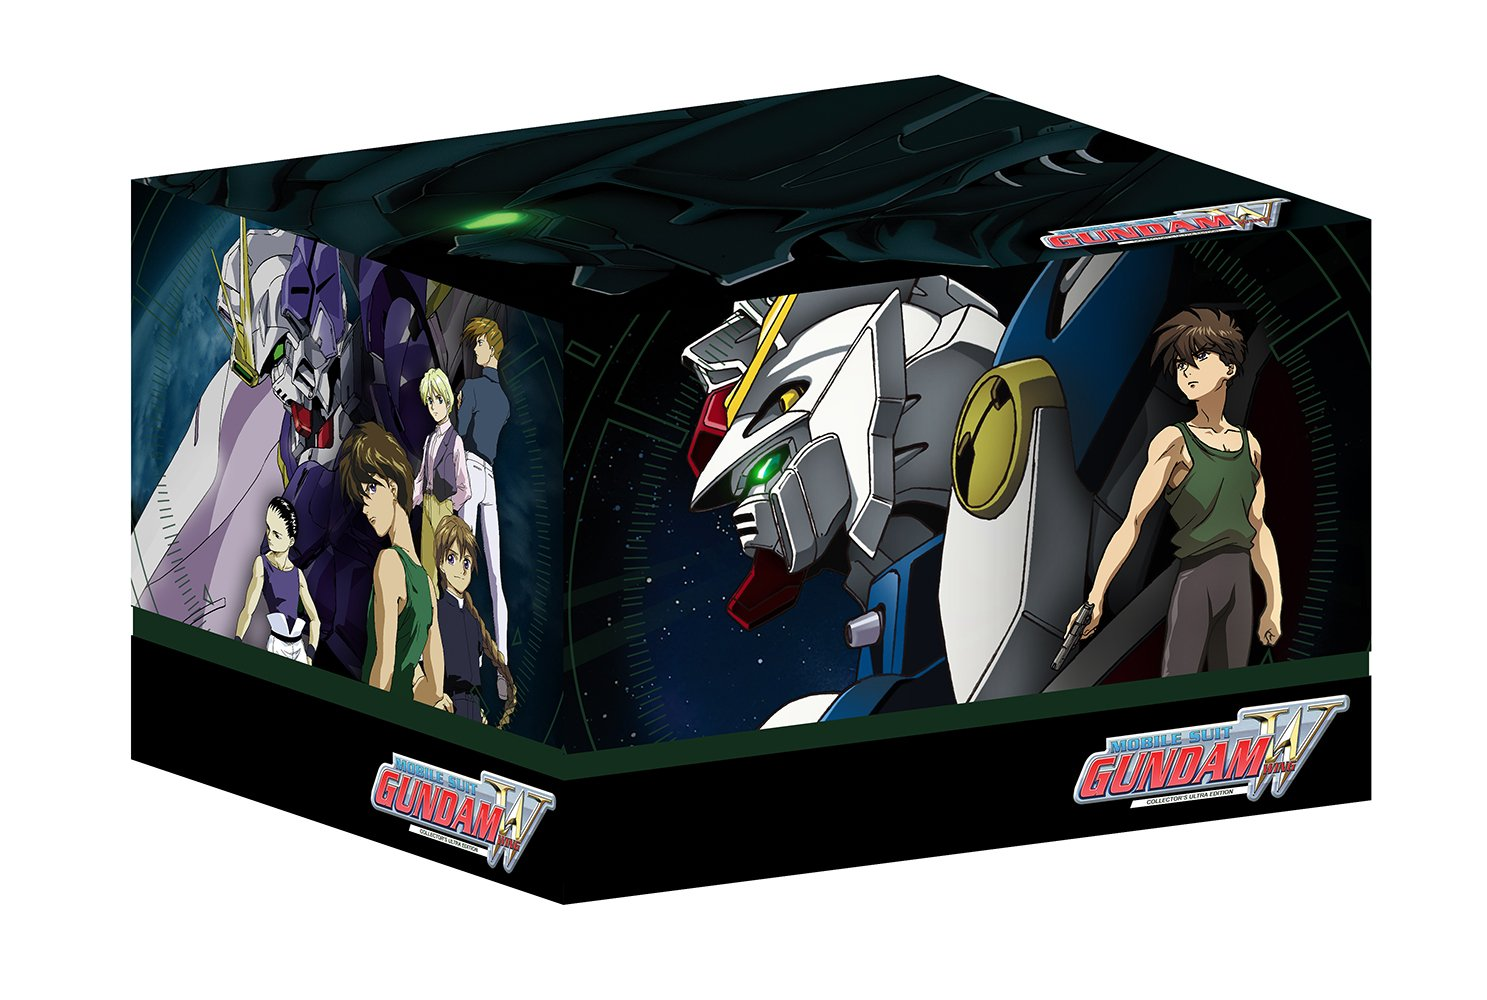 Mobile Suit Gundam Wing Collector's Ultra Edition Blu-ray by Bayview Entertainment